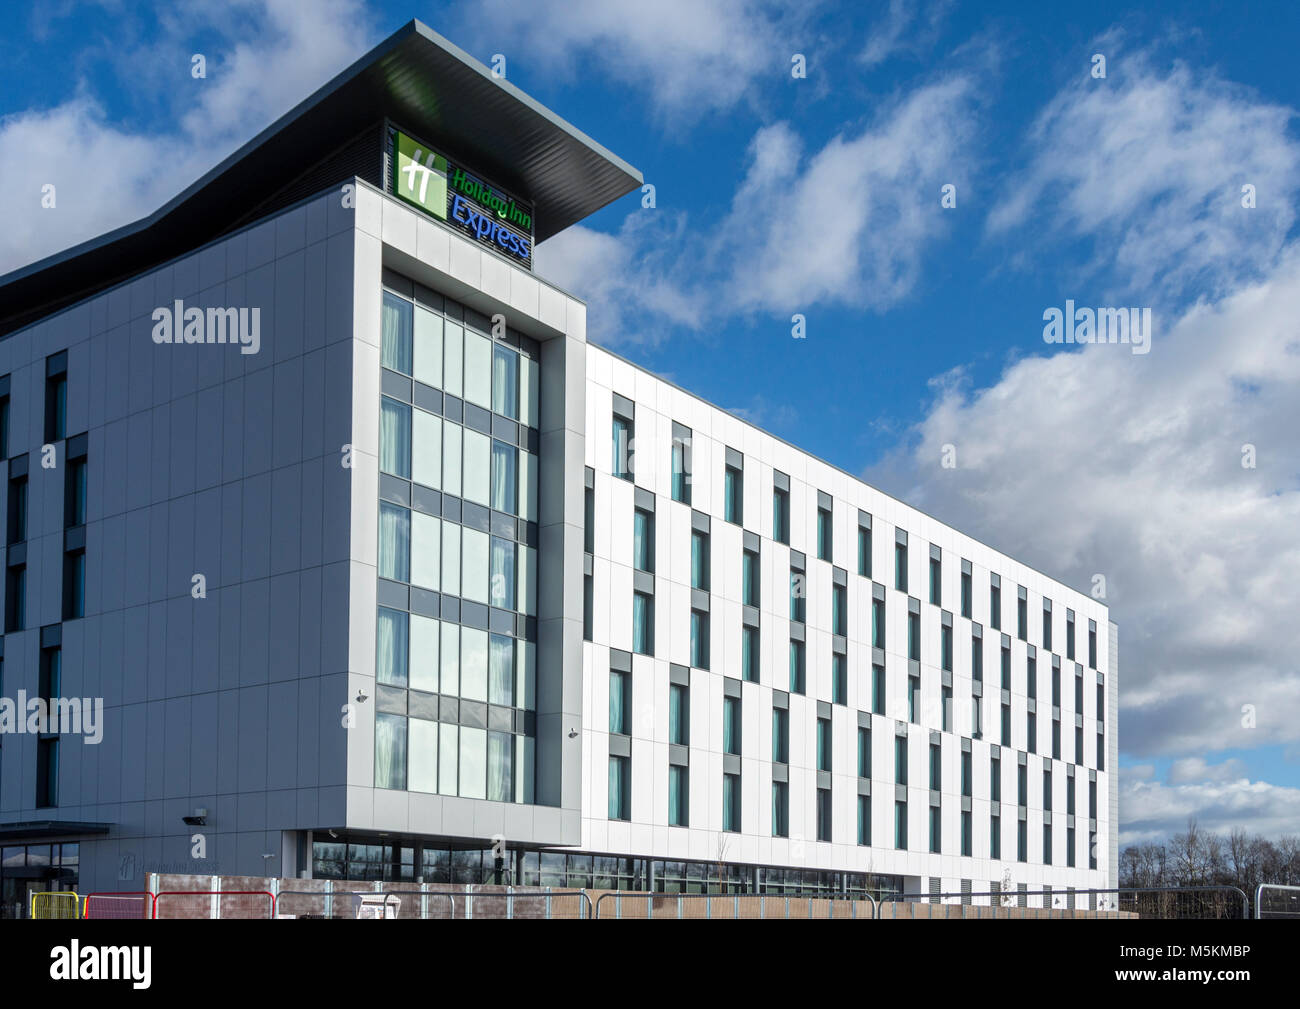 The Holiday Inn Express building, Barton Dock Road, near the Trafford Centre, Manchester, UK - Stock Image